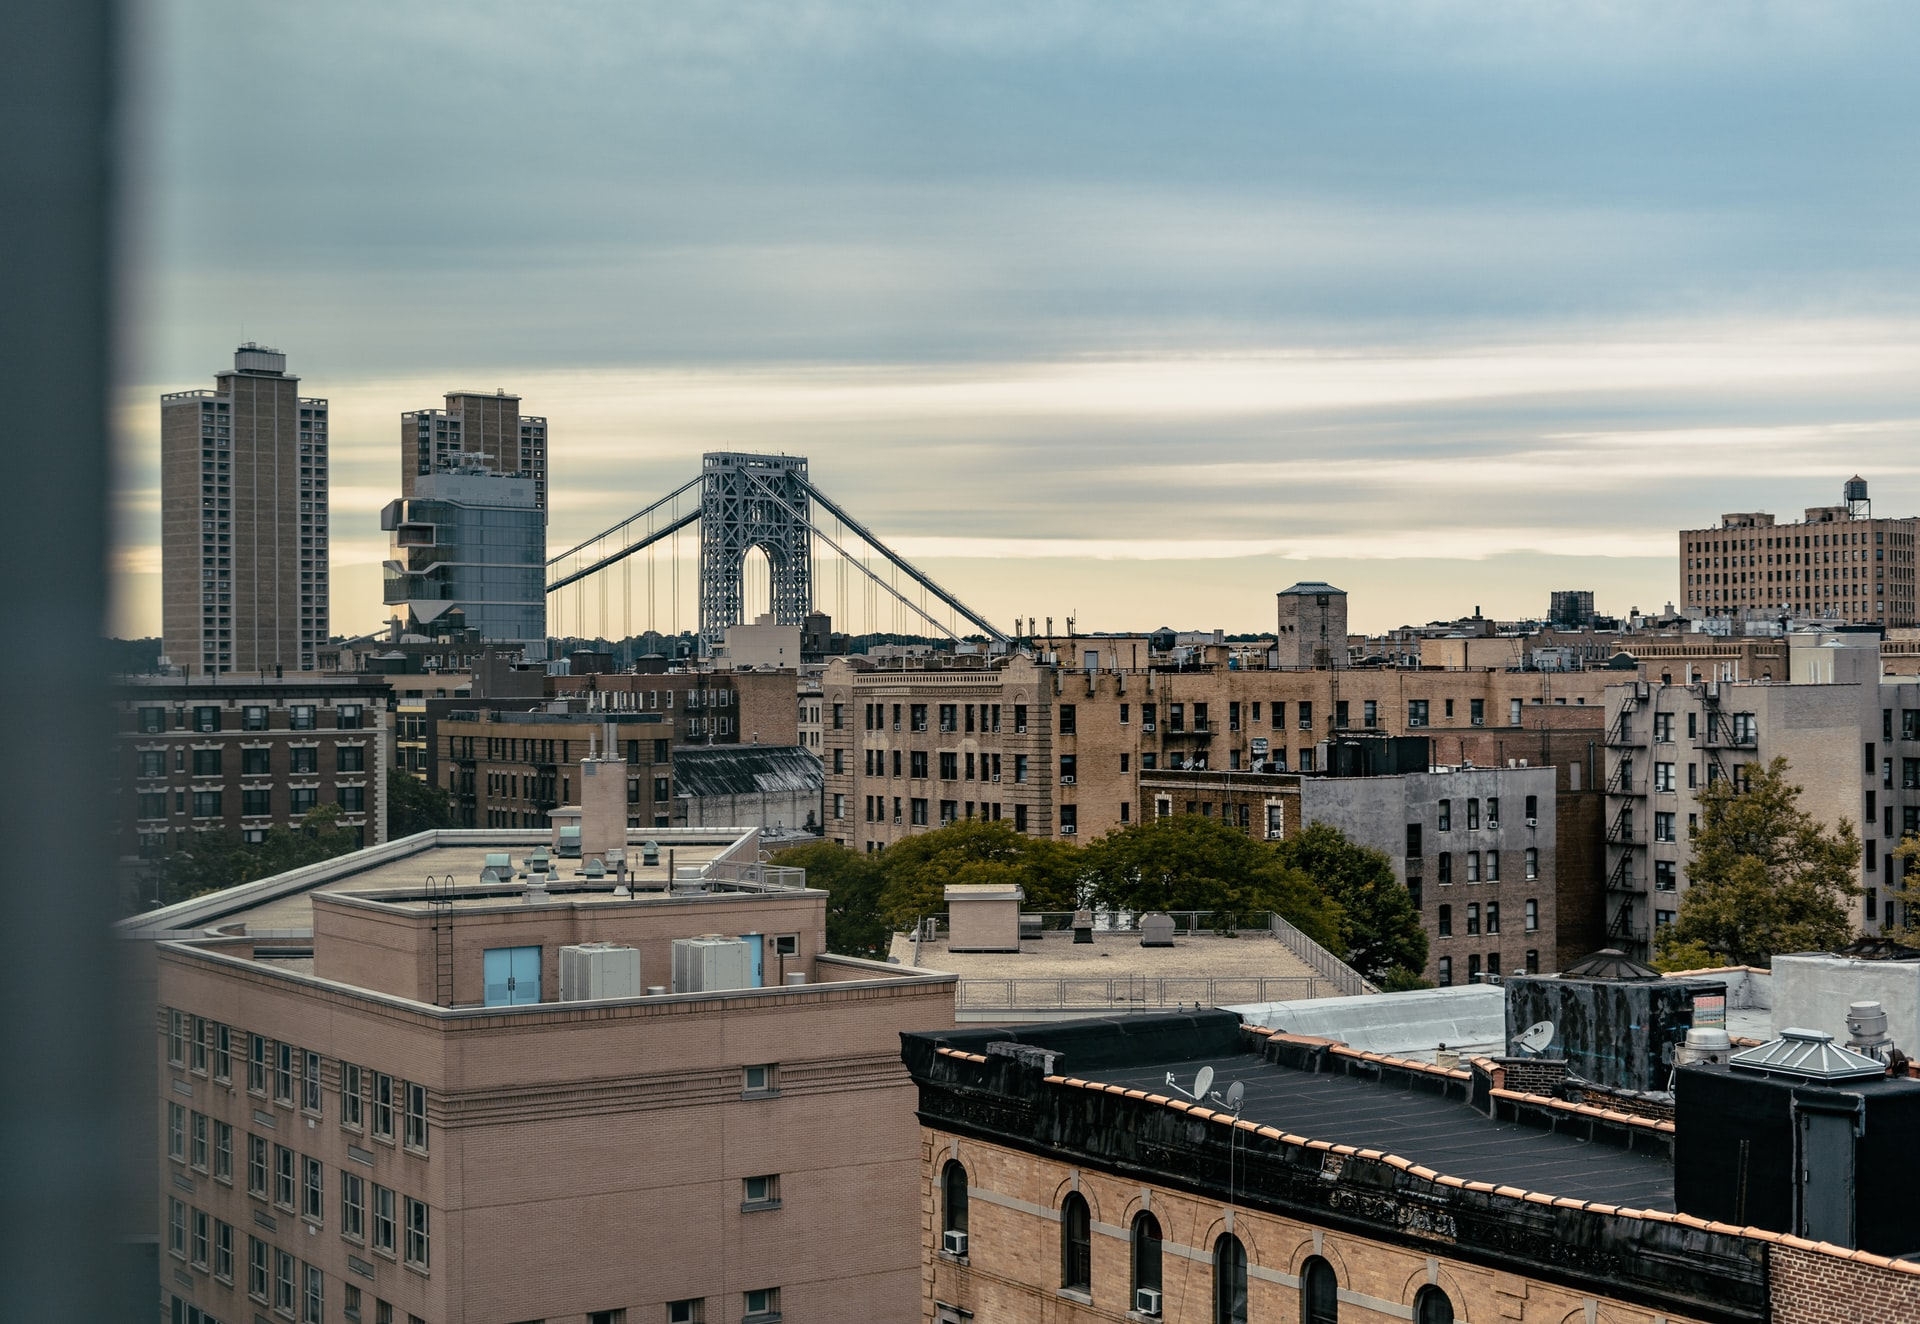 The appeal of moving to Washington Heights